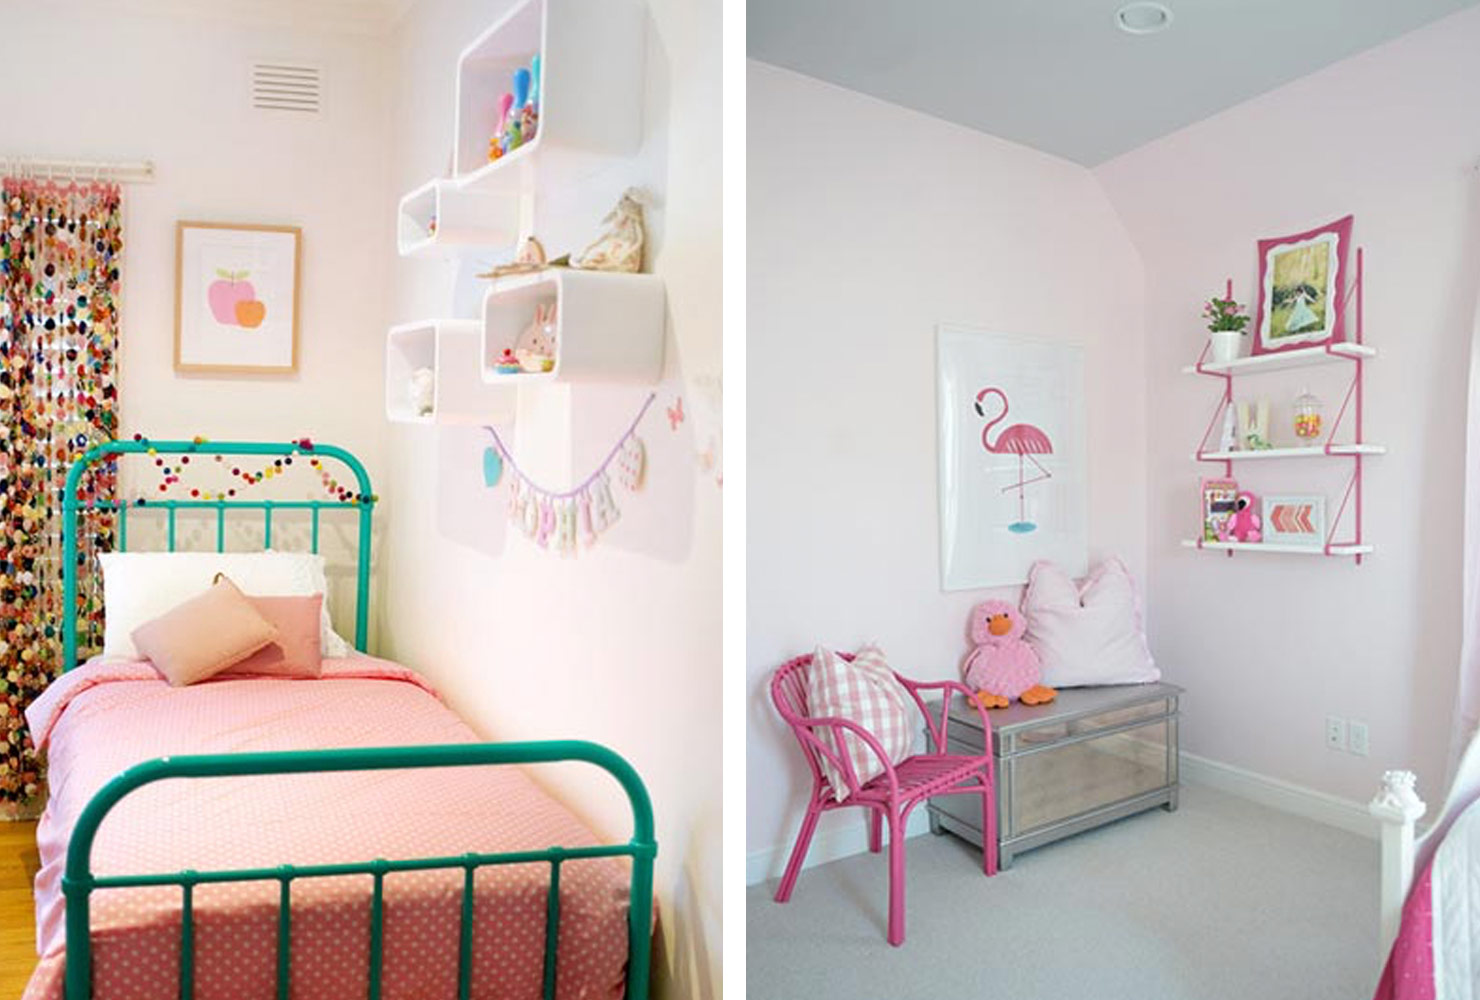 Girls bedroom with pink decor.